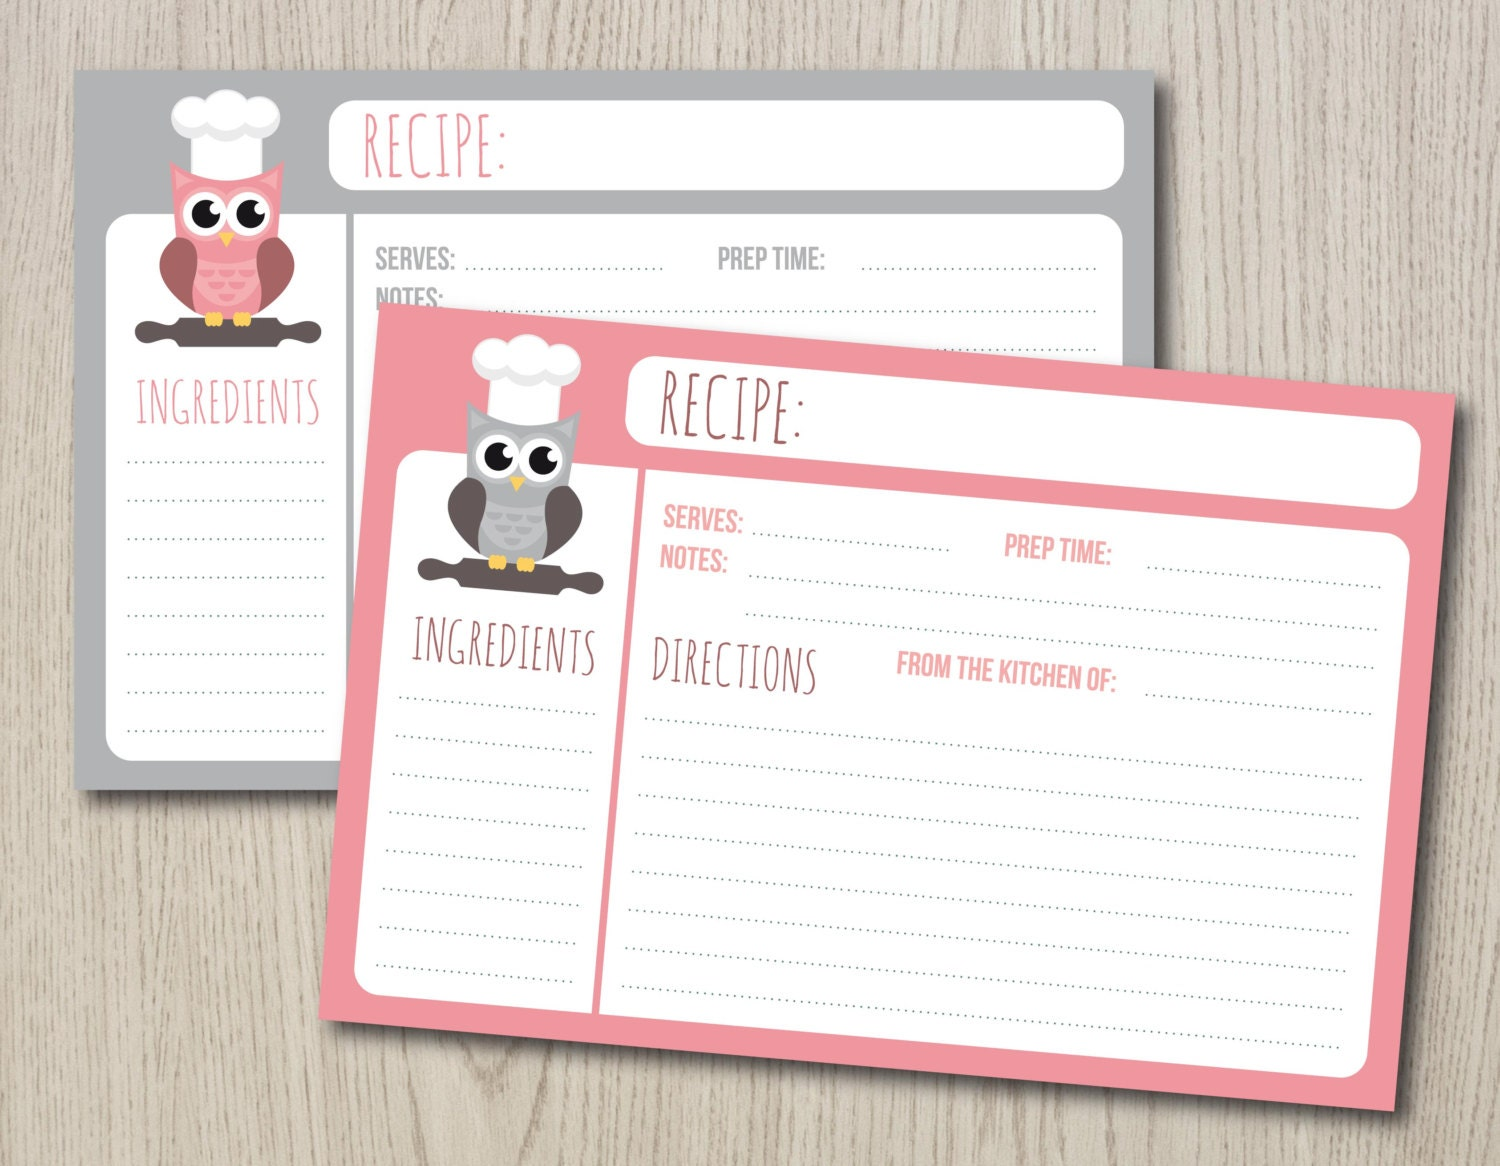 This is an image of Universal Printable Recipe Cards 4x6